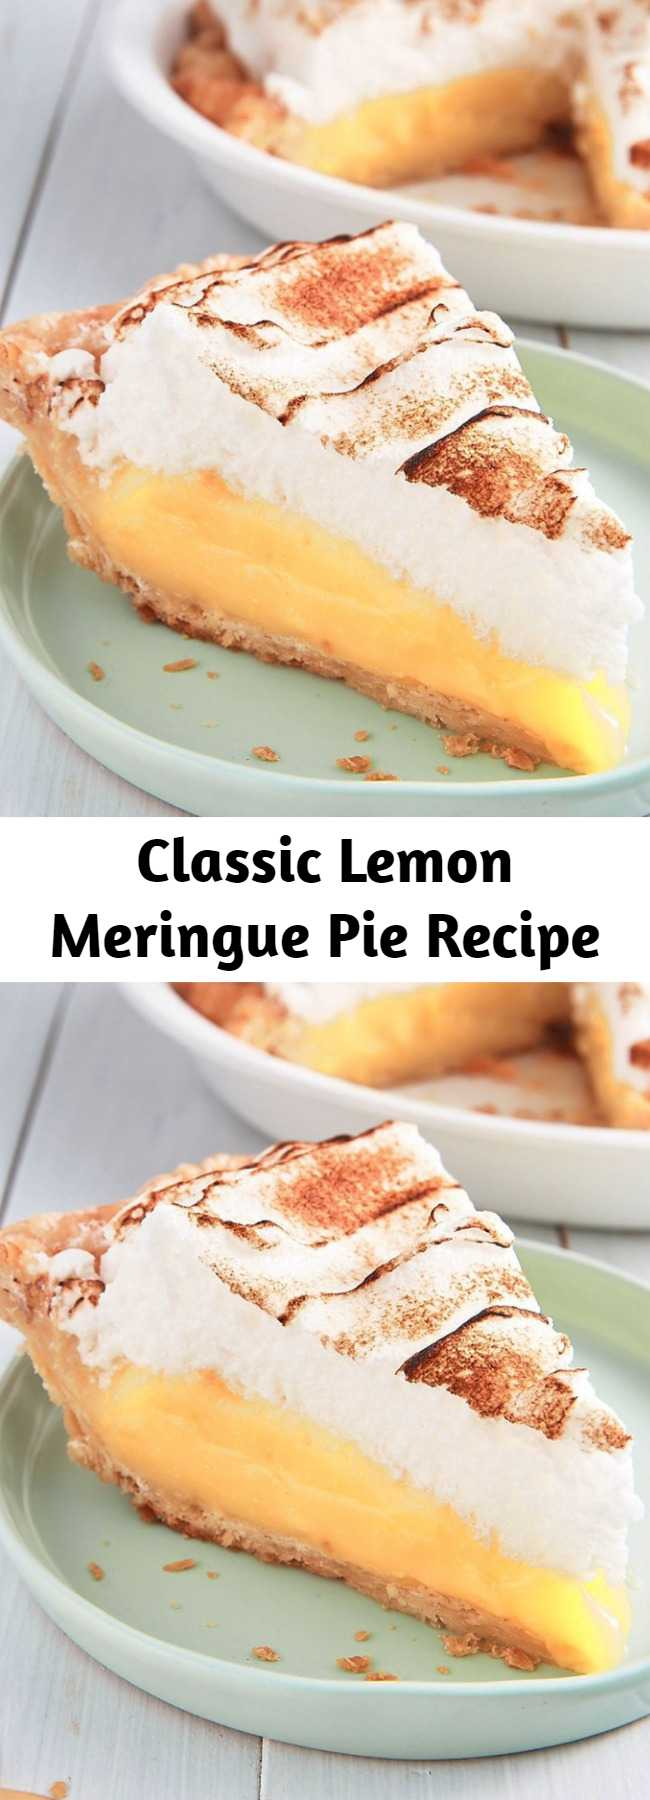 Classic Lemon Meringue Pie Recipe - This Lemon Meringue Pie uses both lemon zest and juice to strike the perfect balance between sweet and tart, plus it has a showstopping meringue topping.